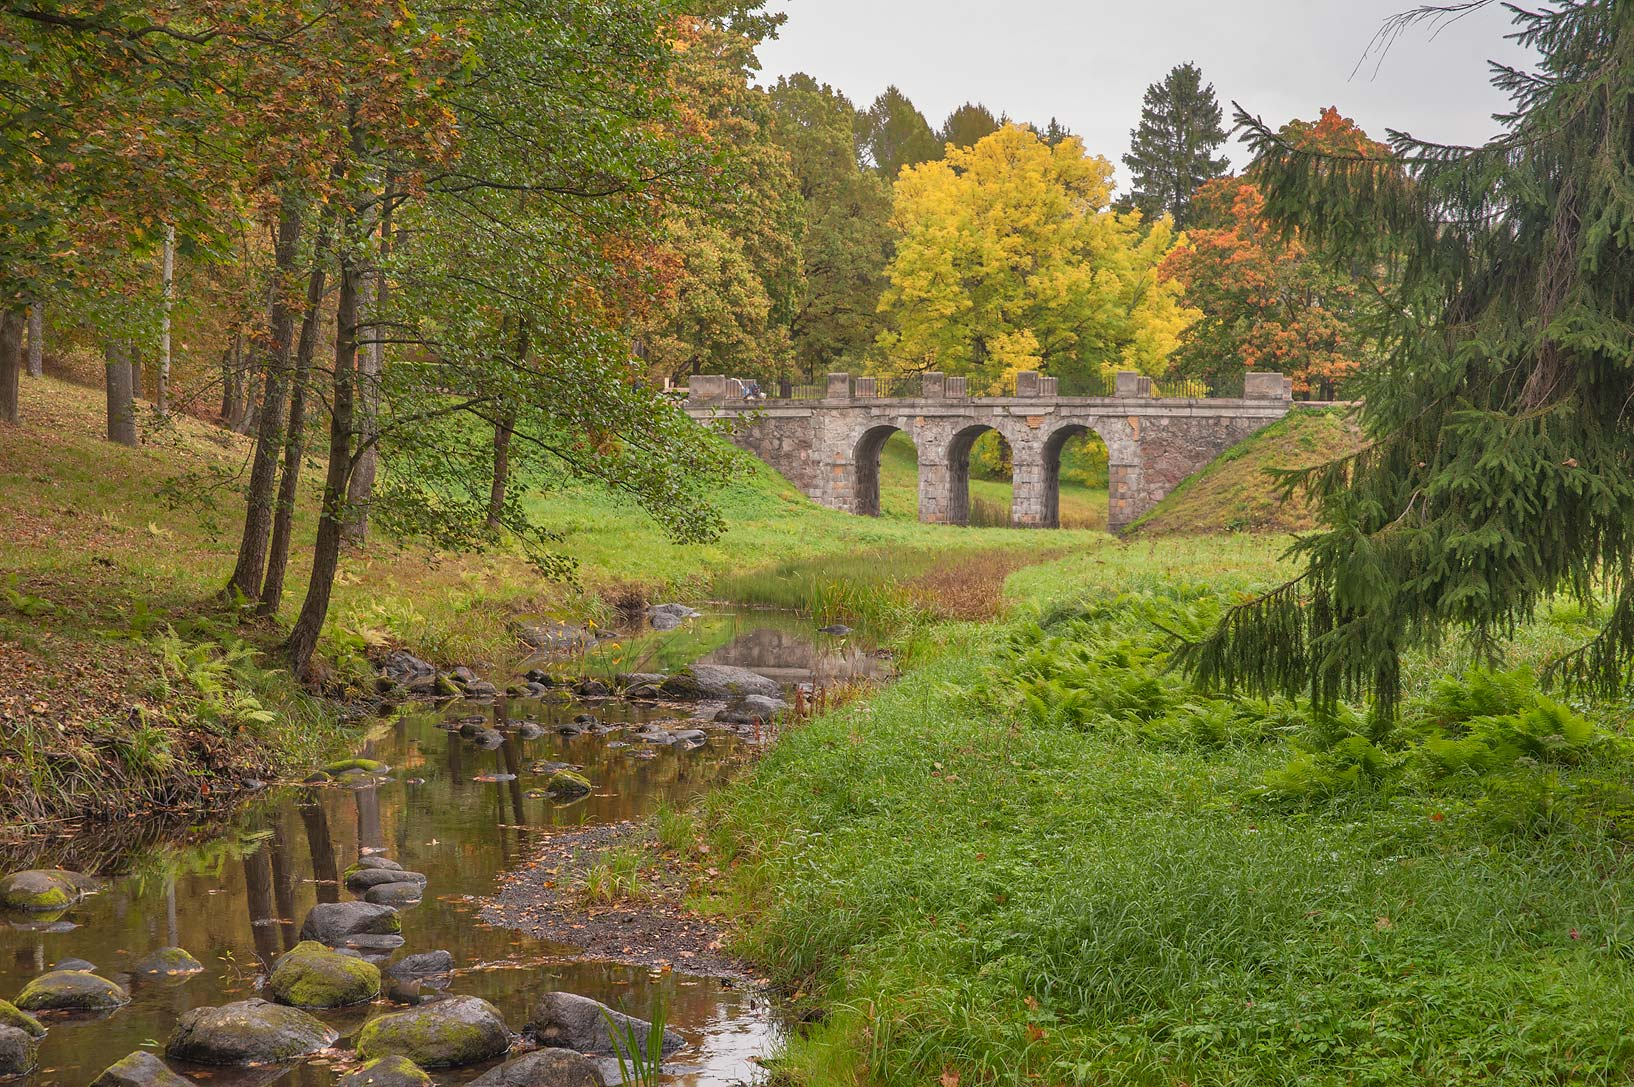 Stone bridge of Karasta River in the park...a suburb of St.Petersburg, Russia